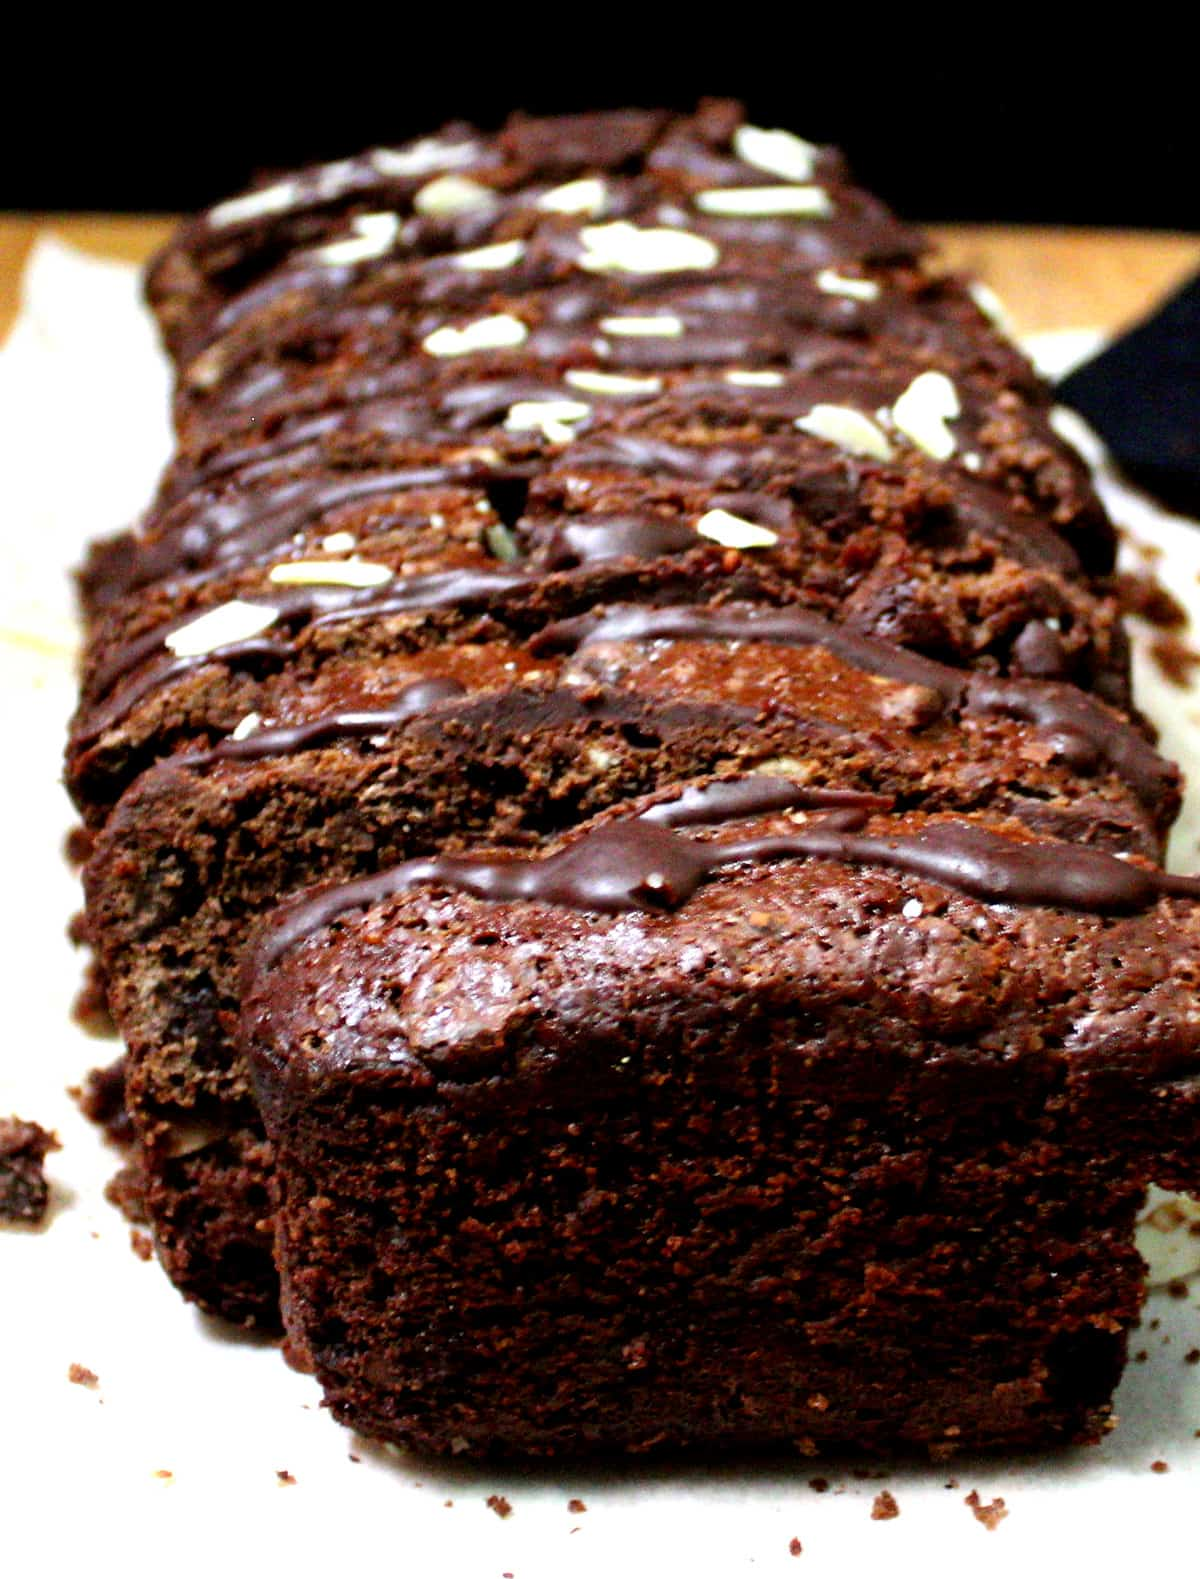 Front shot of sliced vegan chocolate bread with chocolate glaze.